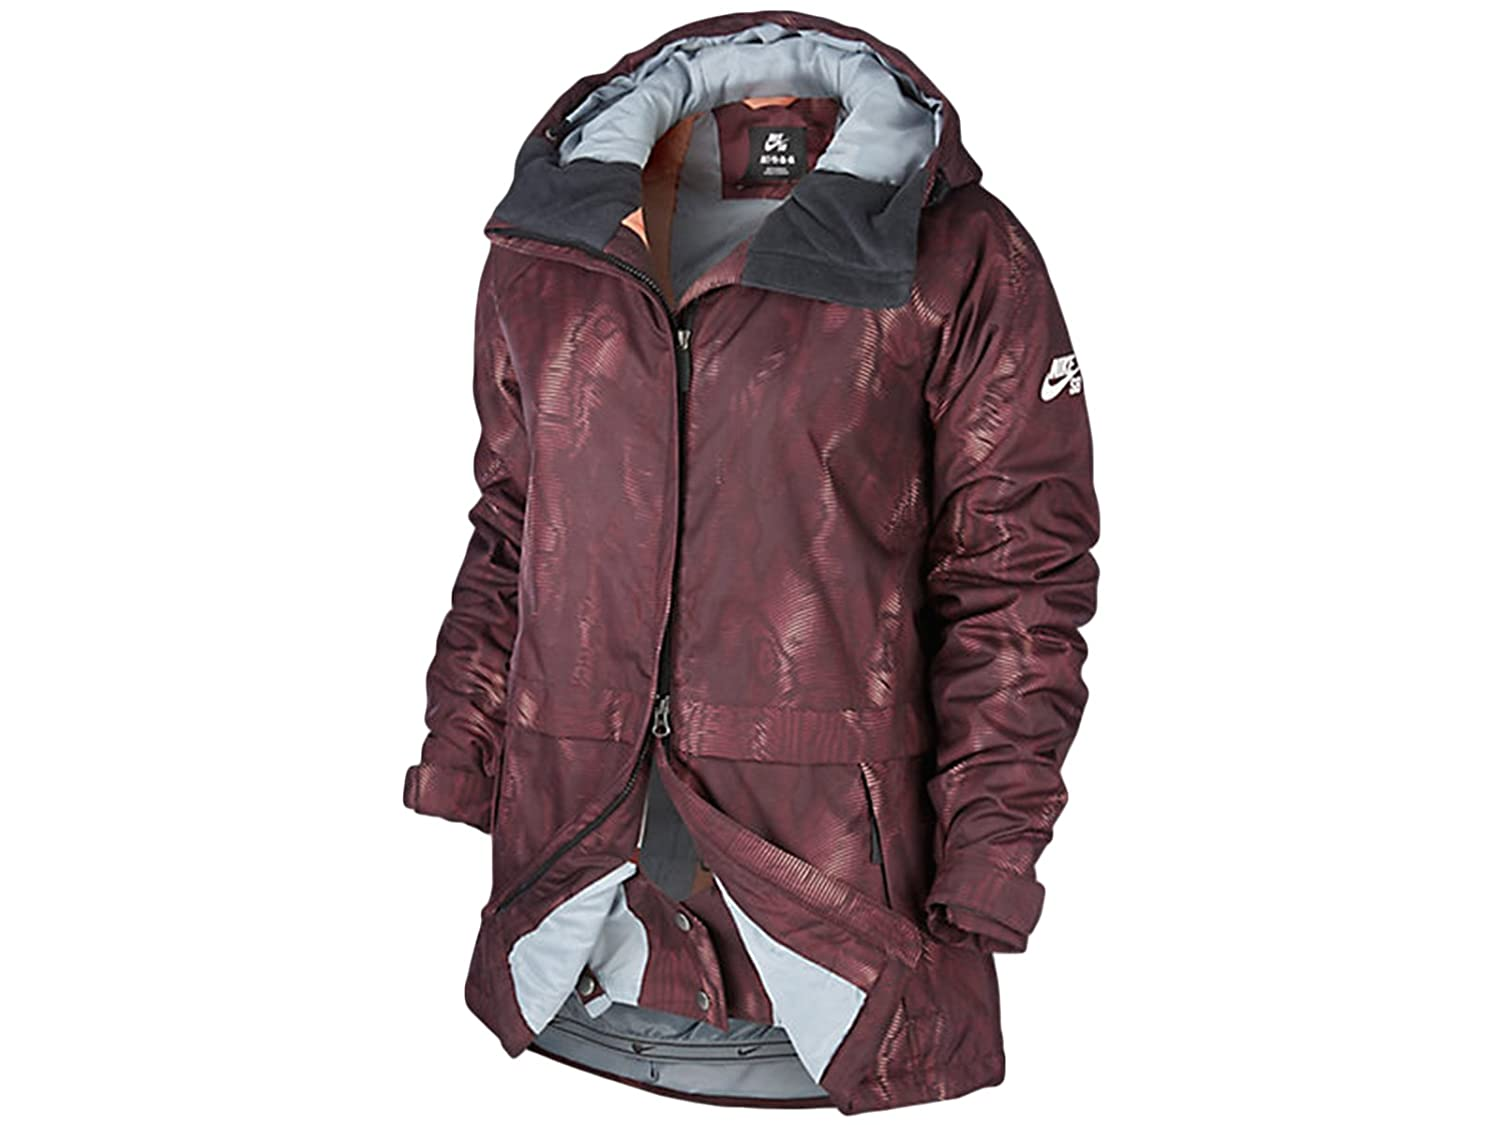 94adeea25699 Nike SB Lustre Print Snowboarding Jacket Burgundy Mango 626081-634 (S)   Amazon.in  Clothing   Accessories